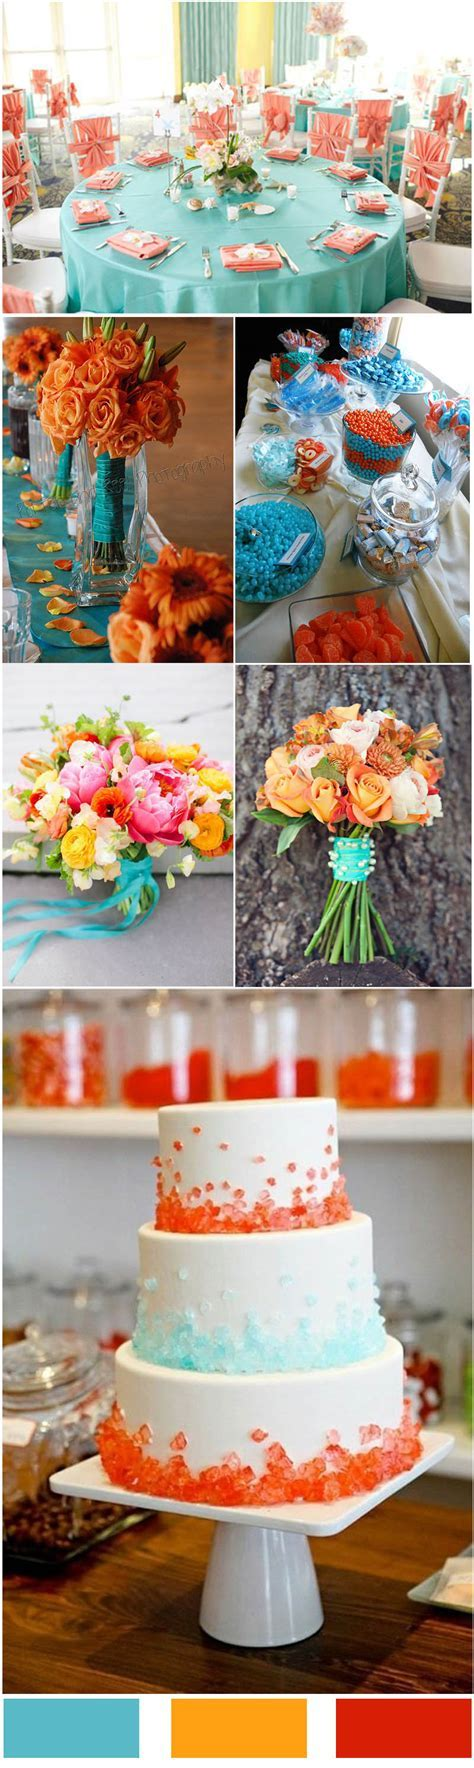 Tiffany Blue inspired Wedding Color Ideas